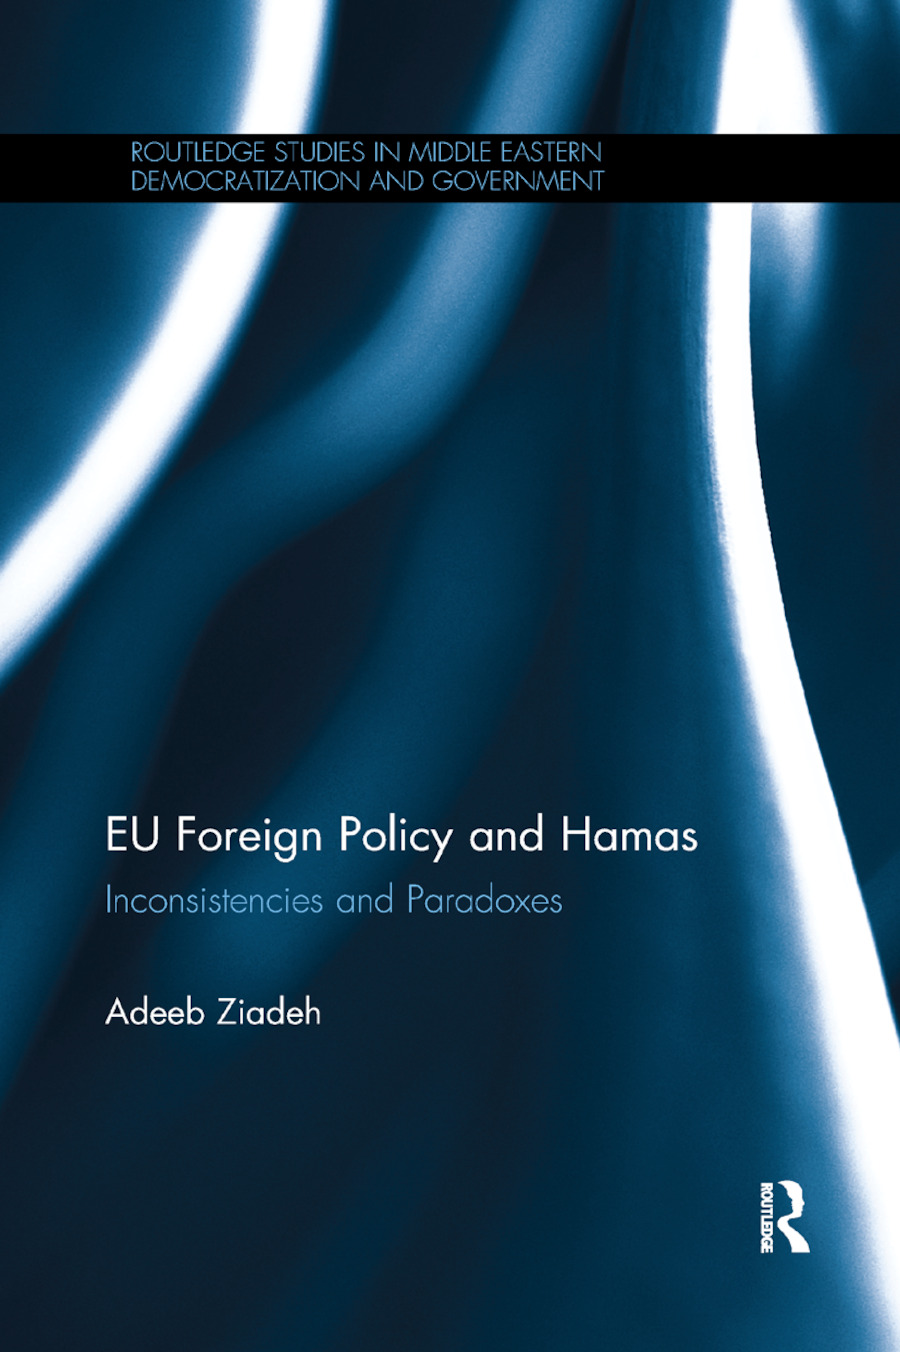 EU Foreign Policy and Hamas: Inconsistencies and Paradoxes book cover